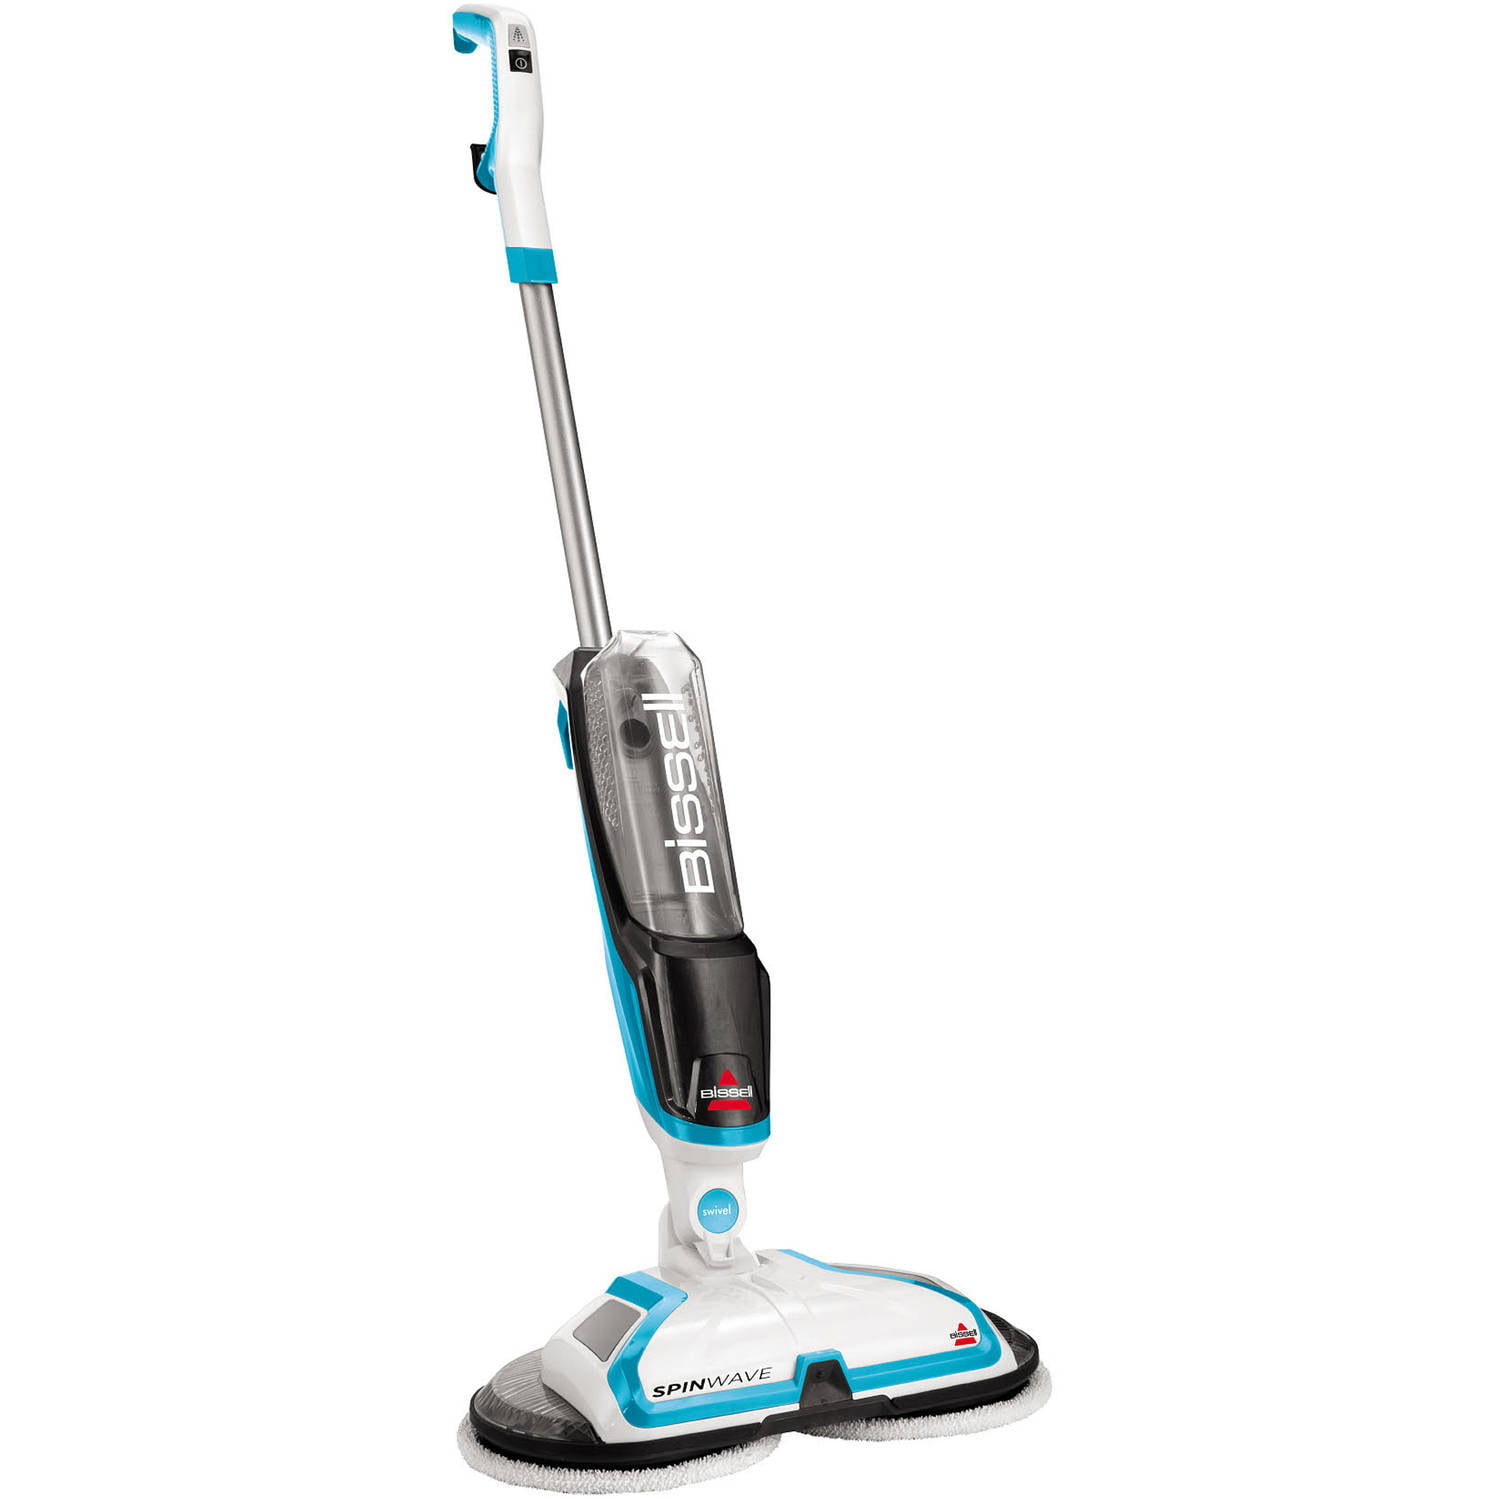 Bissell spinwave hard floor cleaner walmart dailygadgetfo Image collections